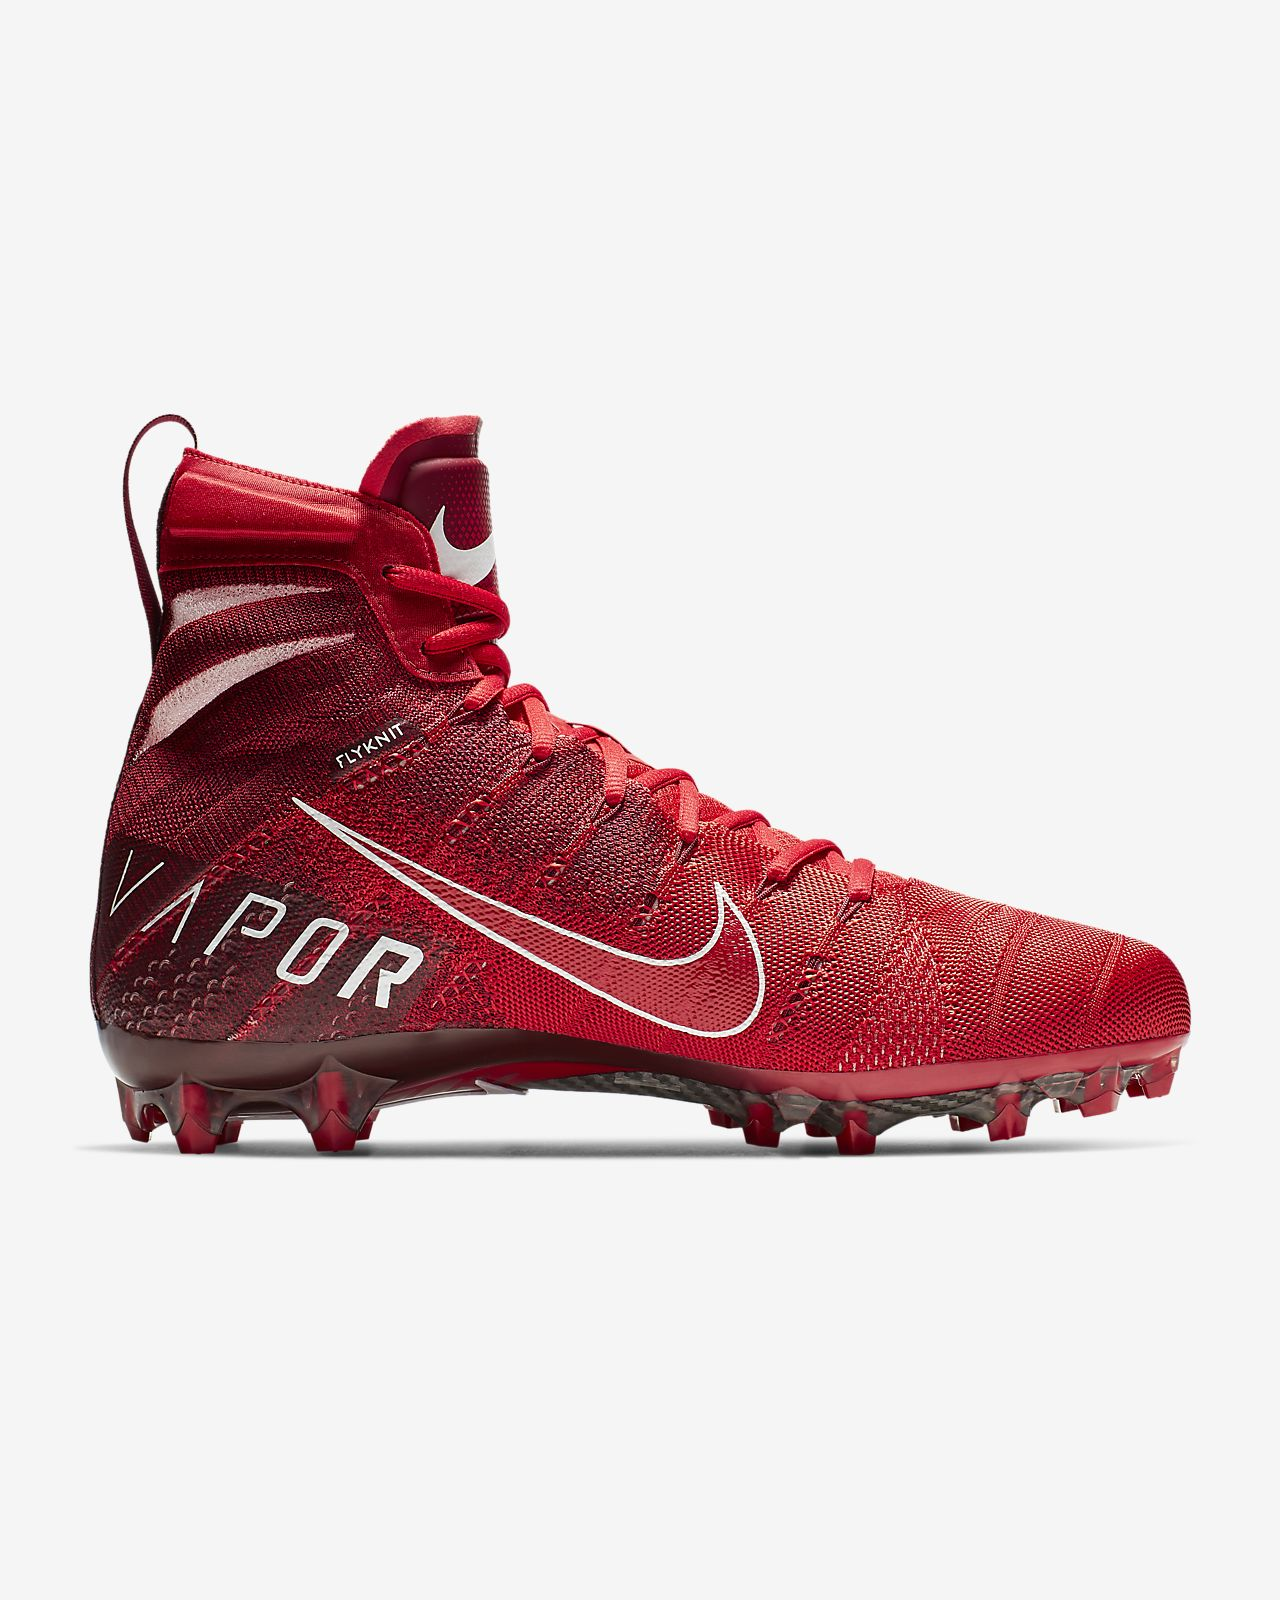 sports shoes fc48f 43e6c ... Nike Vapor Untouchable 3 Elite Football Cleat